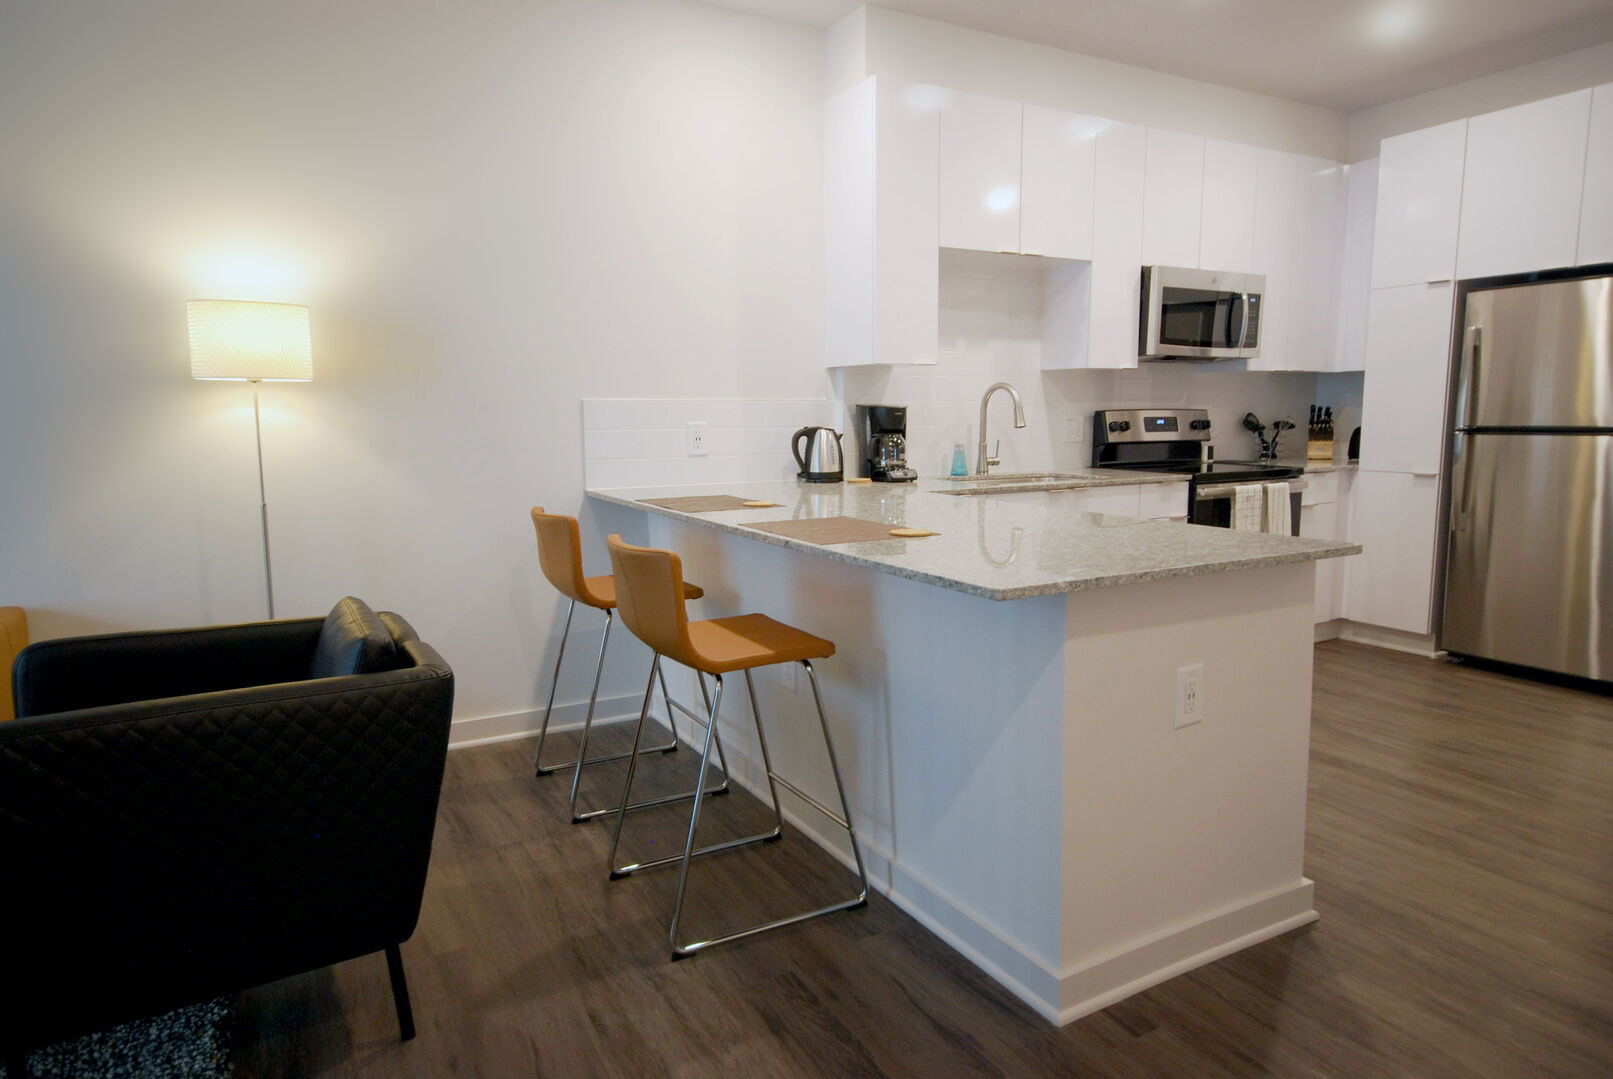 Kitchen Dining Bar with Stools - Short Term Apartment Atlanta - 1-Bedroom Spectacular Suites